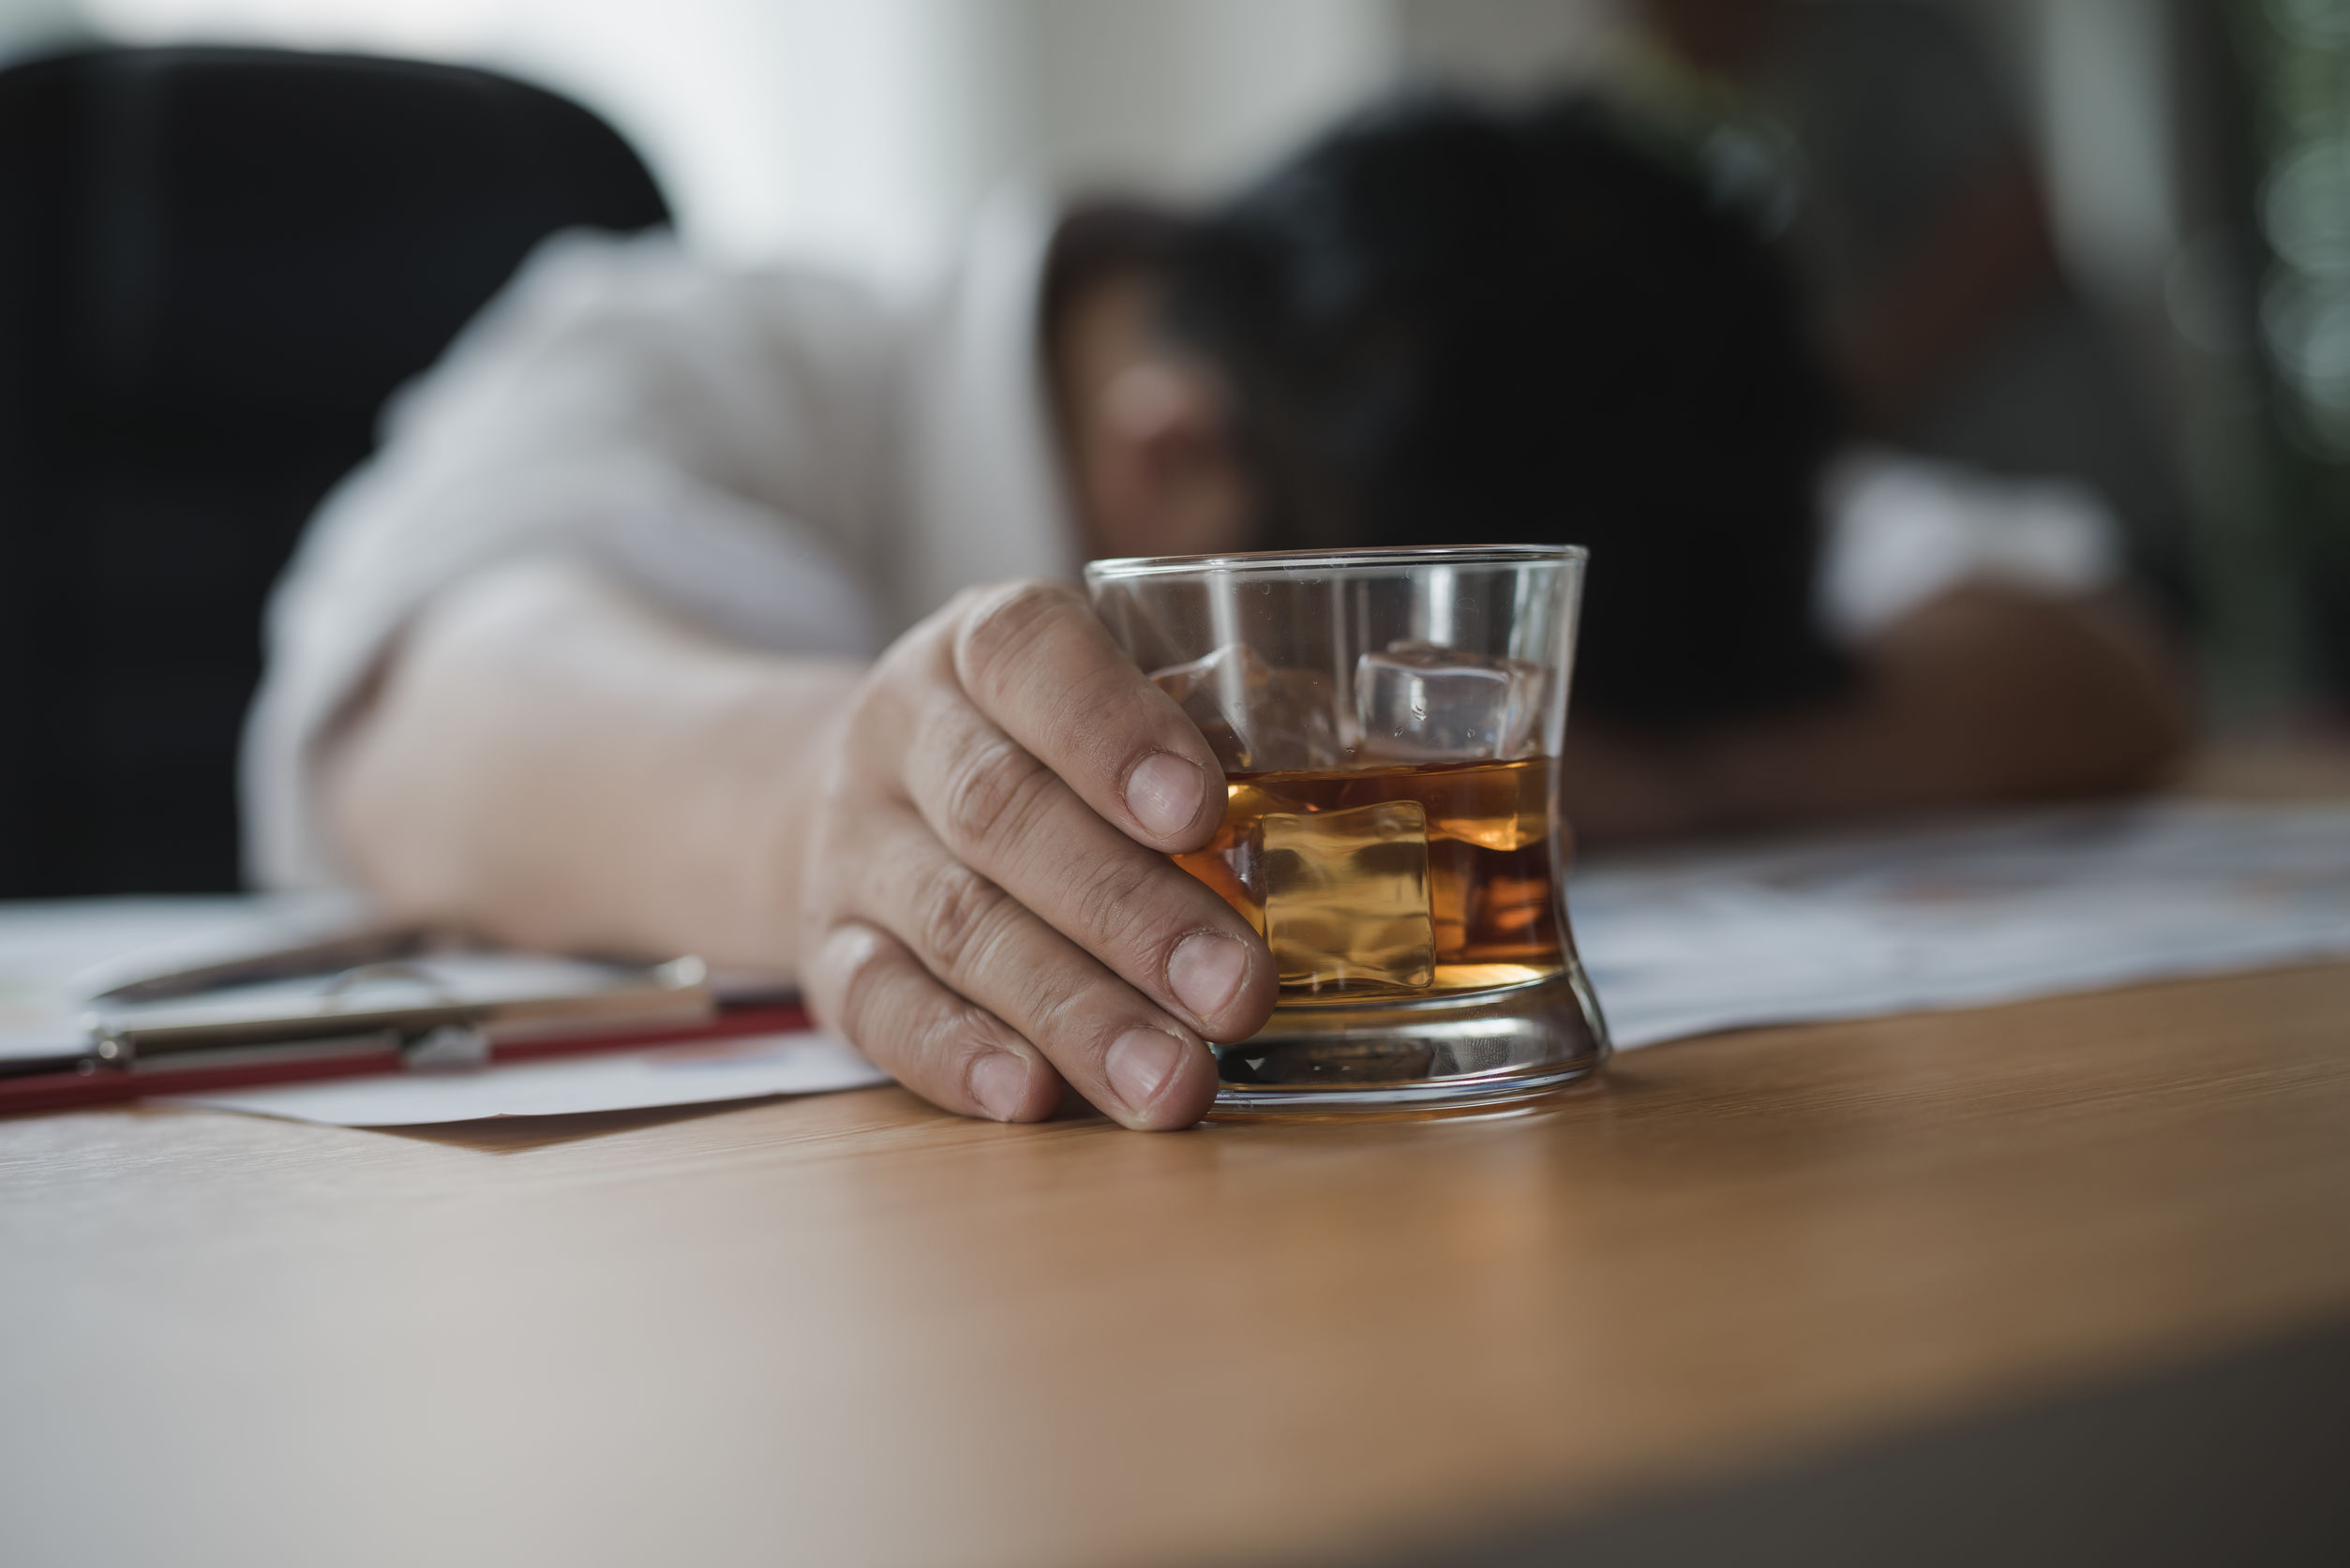 How Do Drugs And Alcohol Affect Mental Health